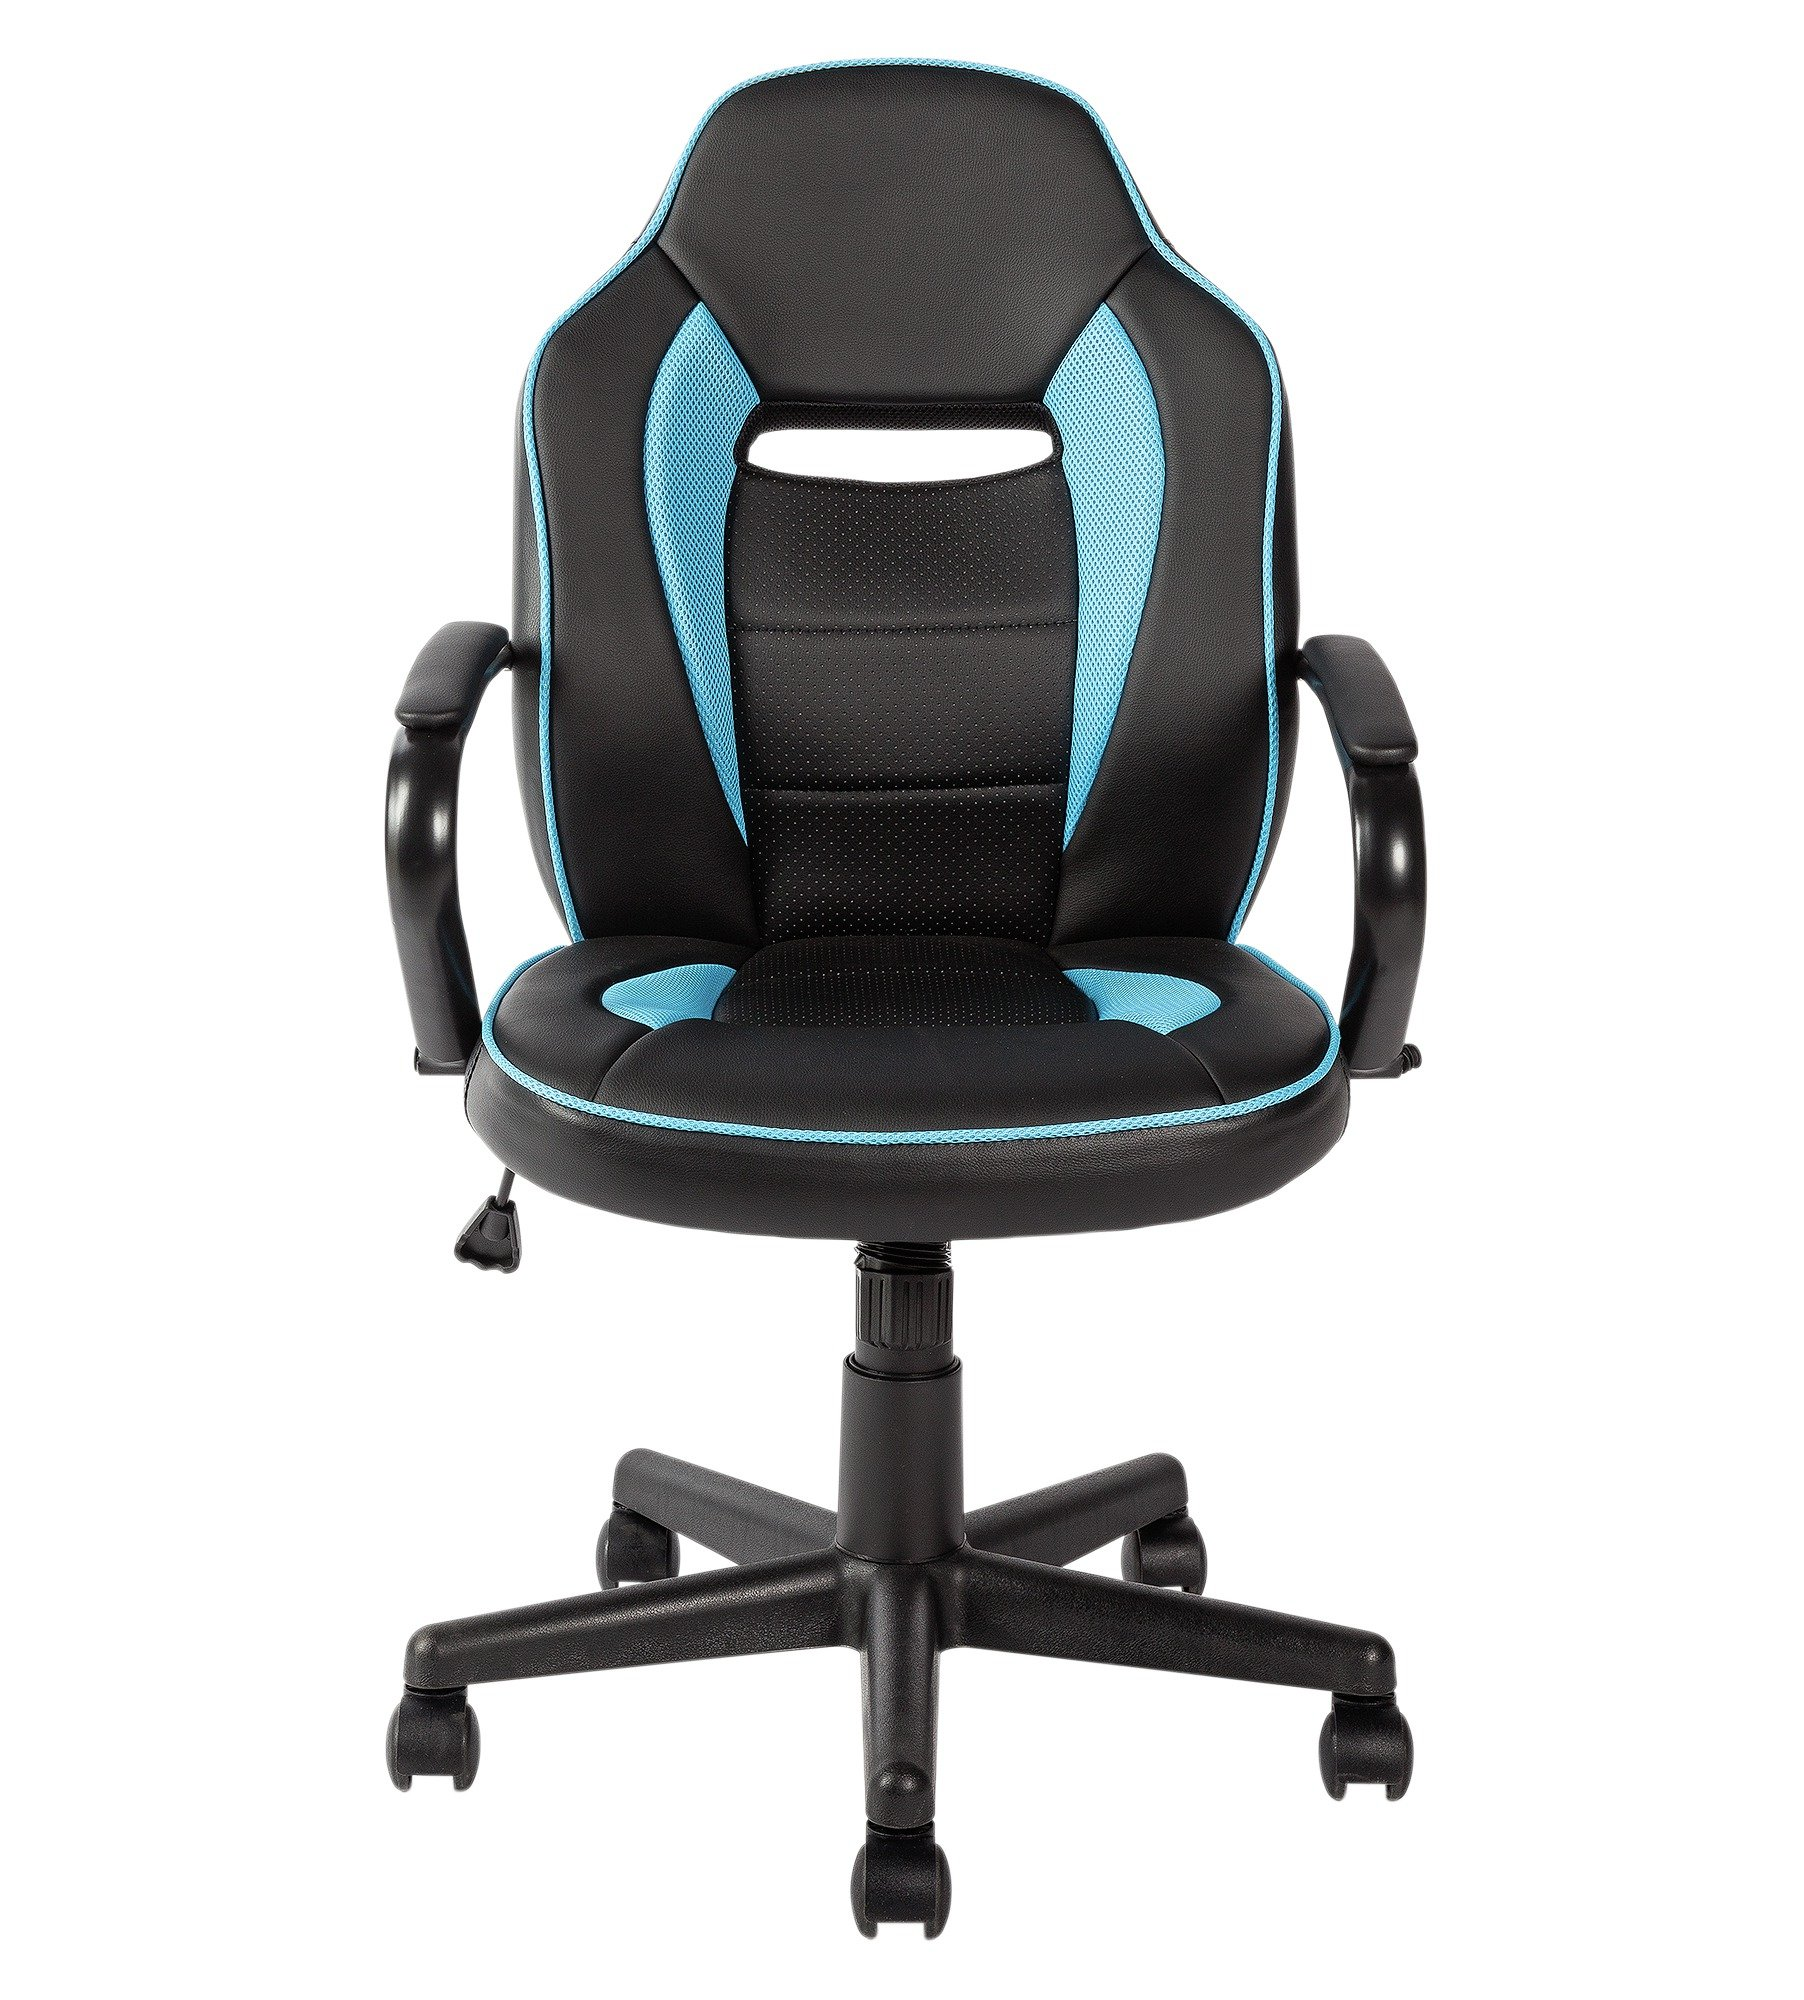 buy home mid back office gaming chair - blue & black at argos.co